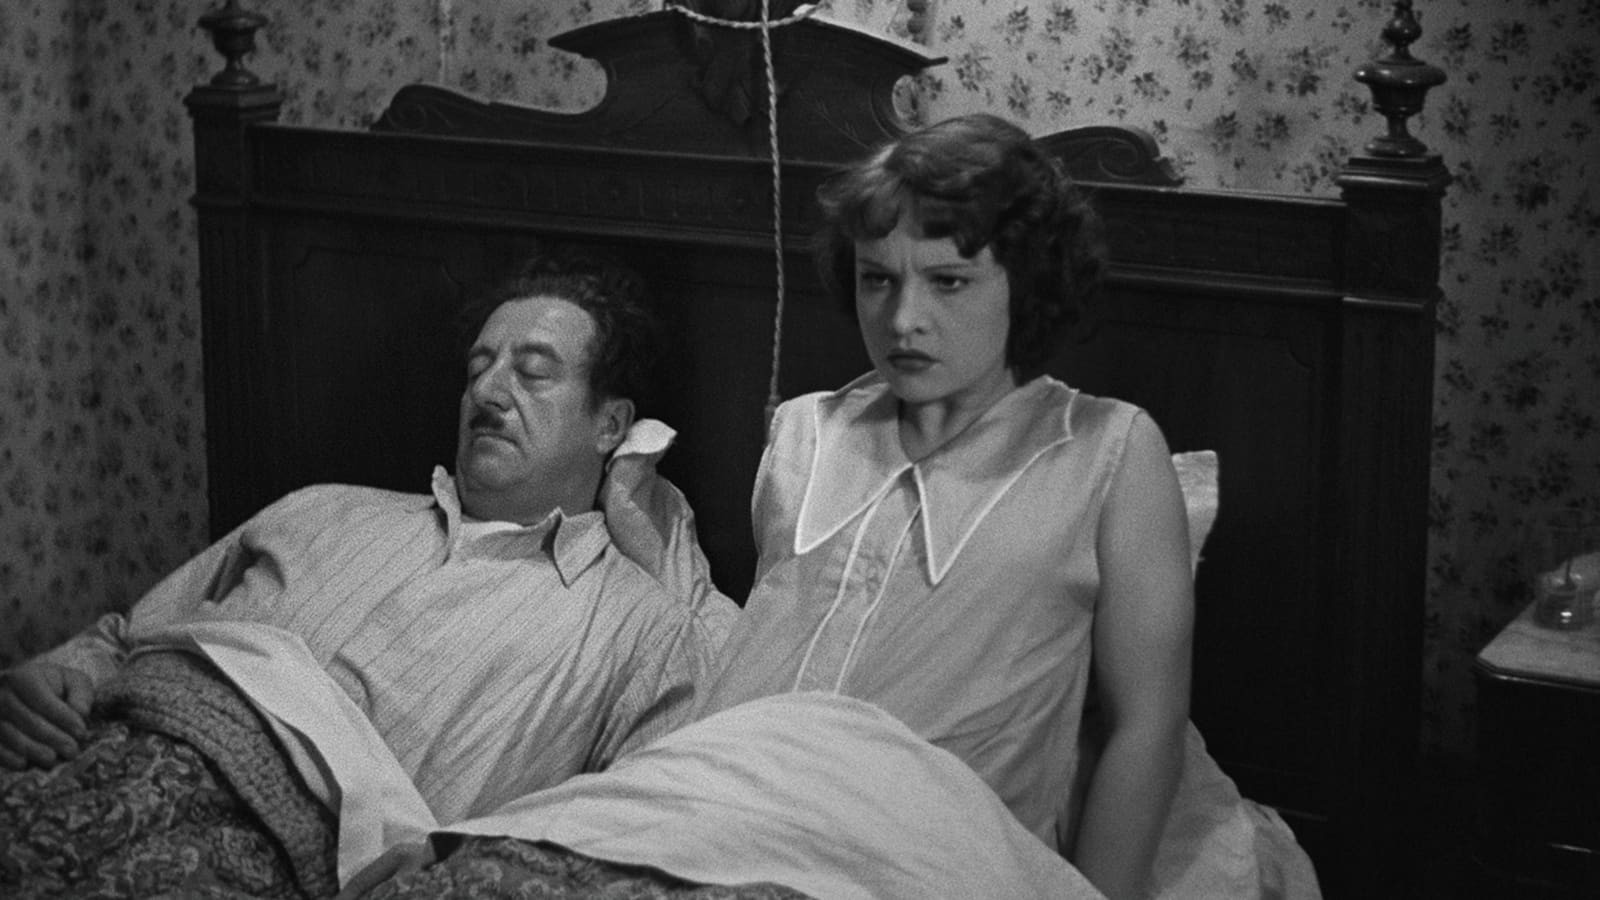 Watch the Trailer for Marcel Pagnol's The Baker's Wife